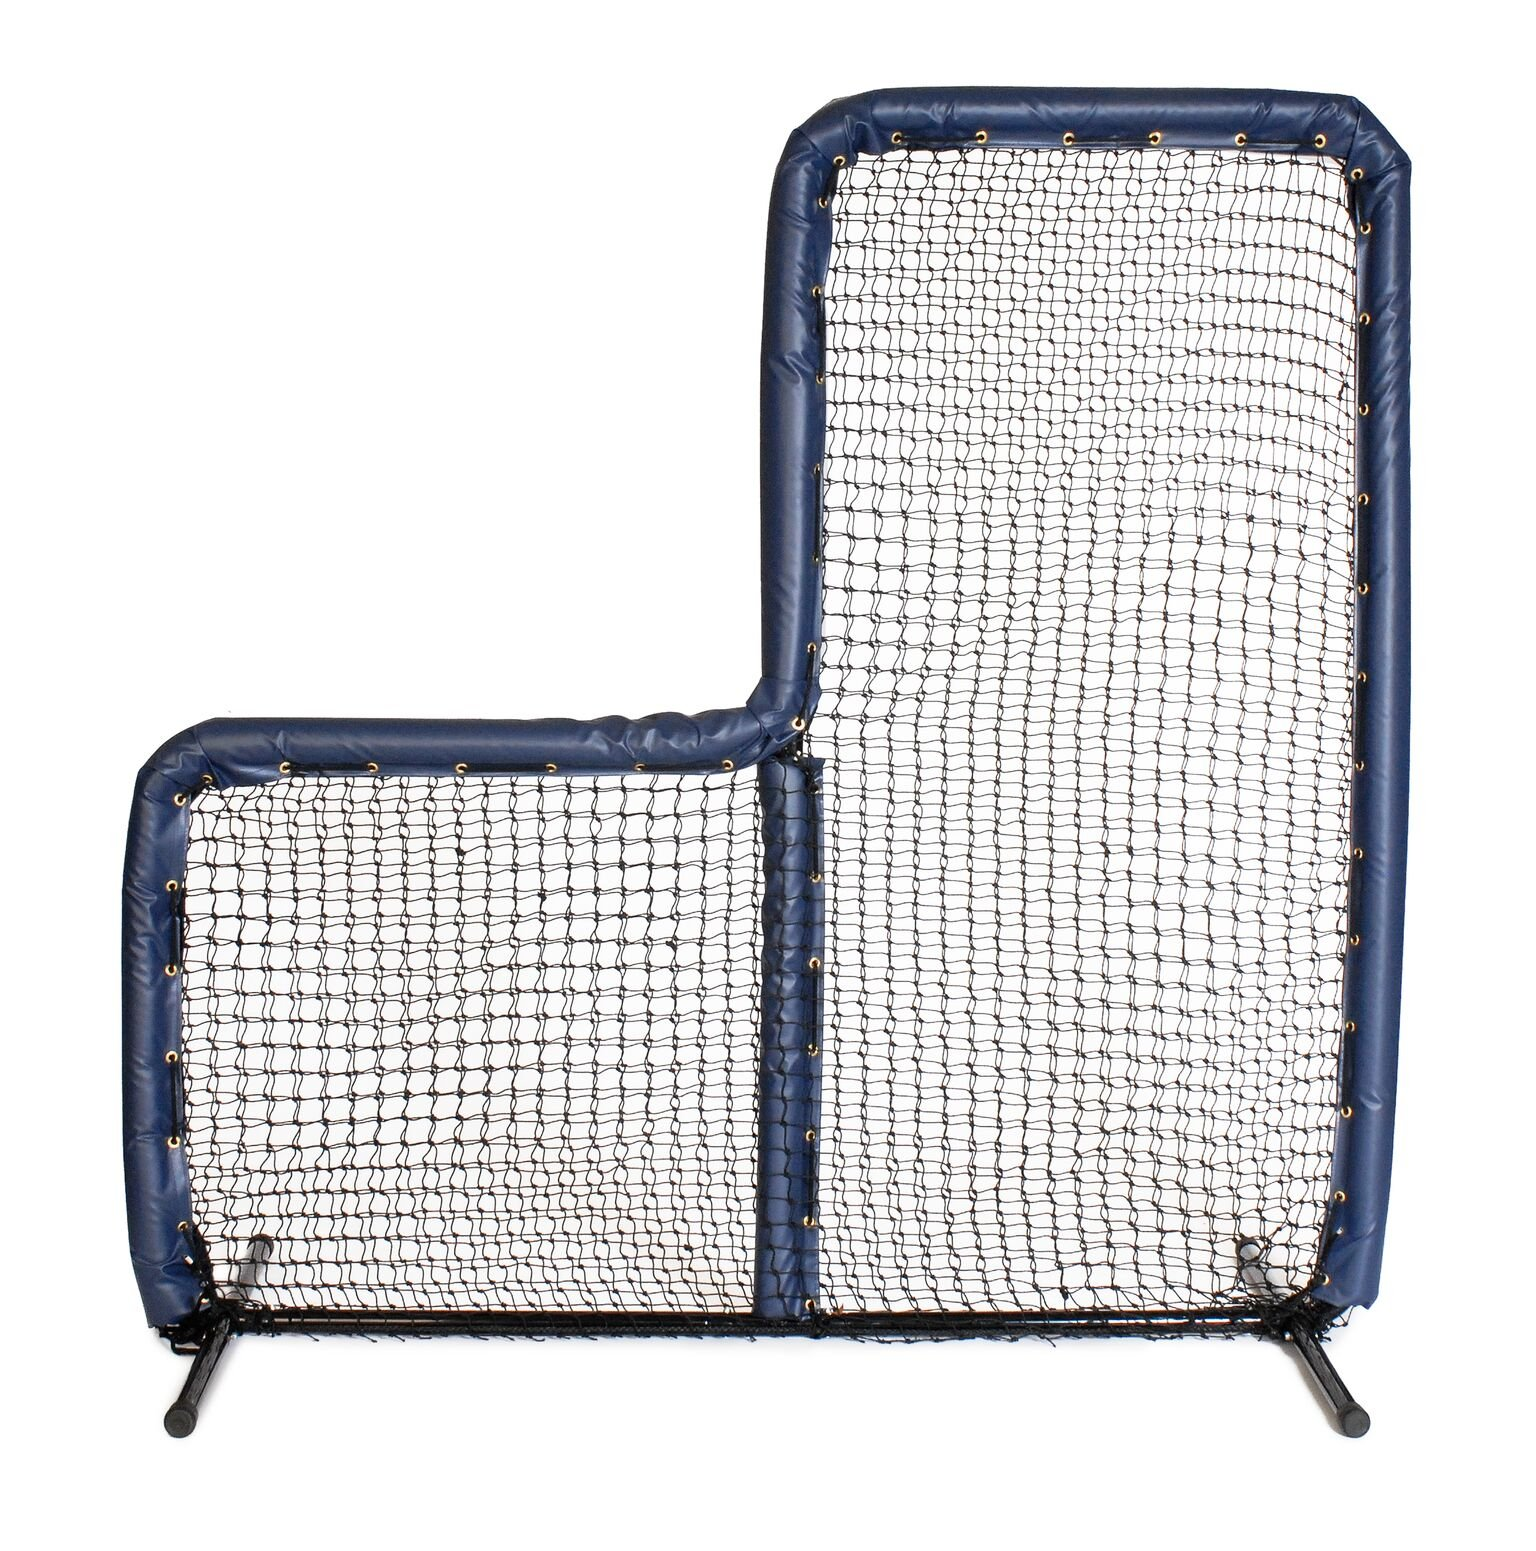 Armor Series Pitching Screen Baseball Softball Practice Net with Screen Bulletz Leg Caps. 7x7 L-Screen Perfect for Baseball and Softball Batting Practice. Choose Padding Color. (Navy) by Armor